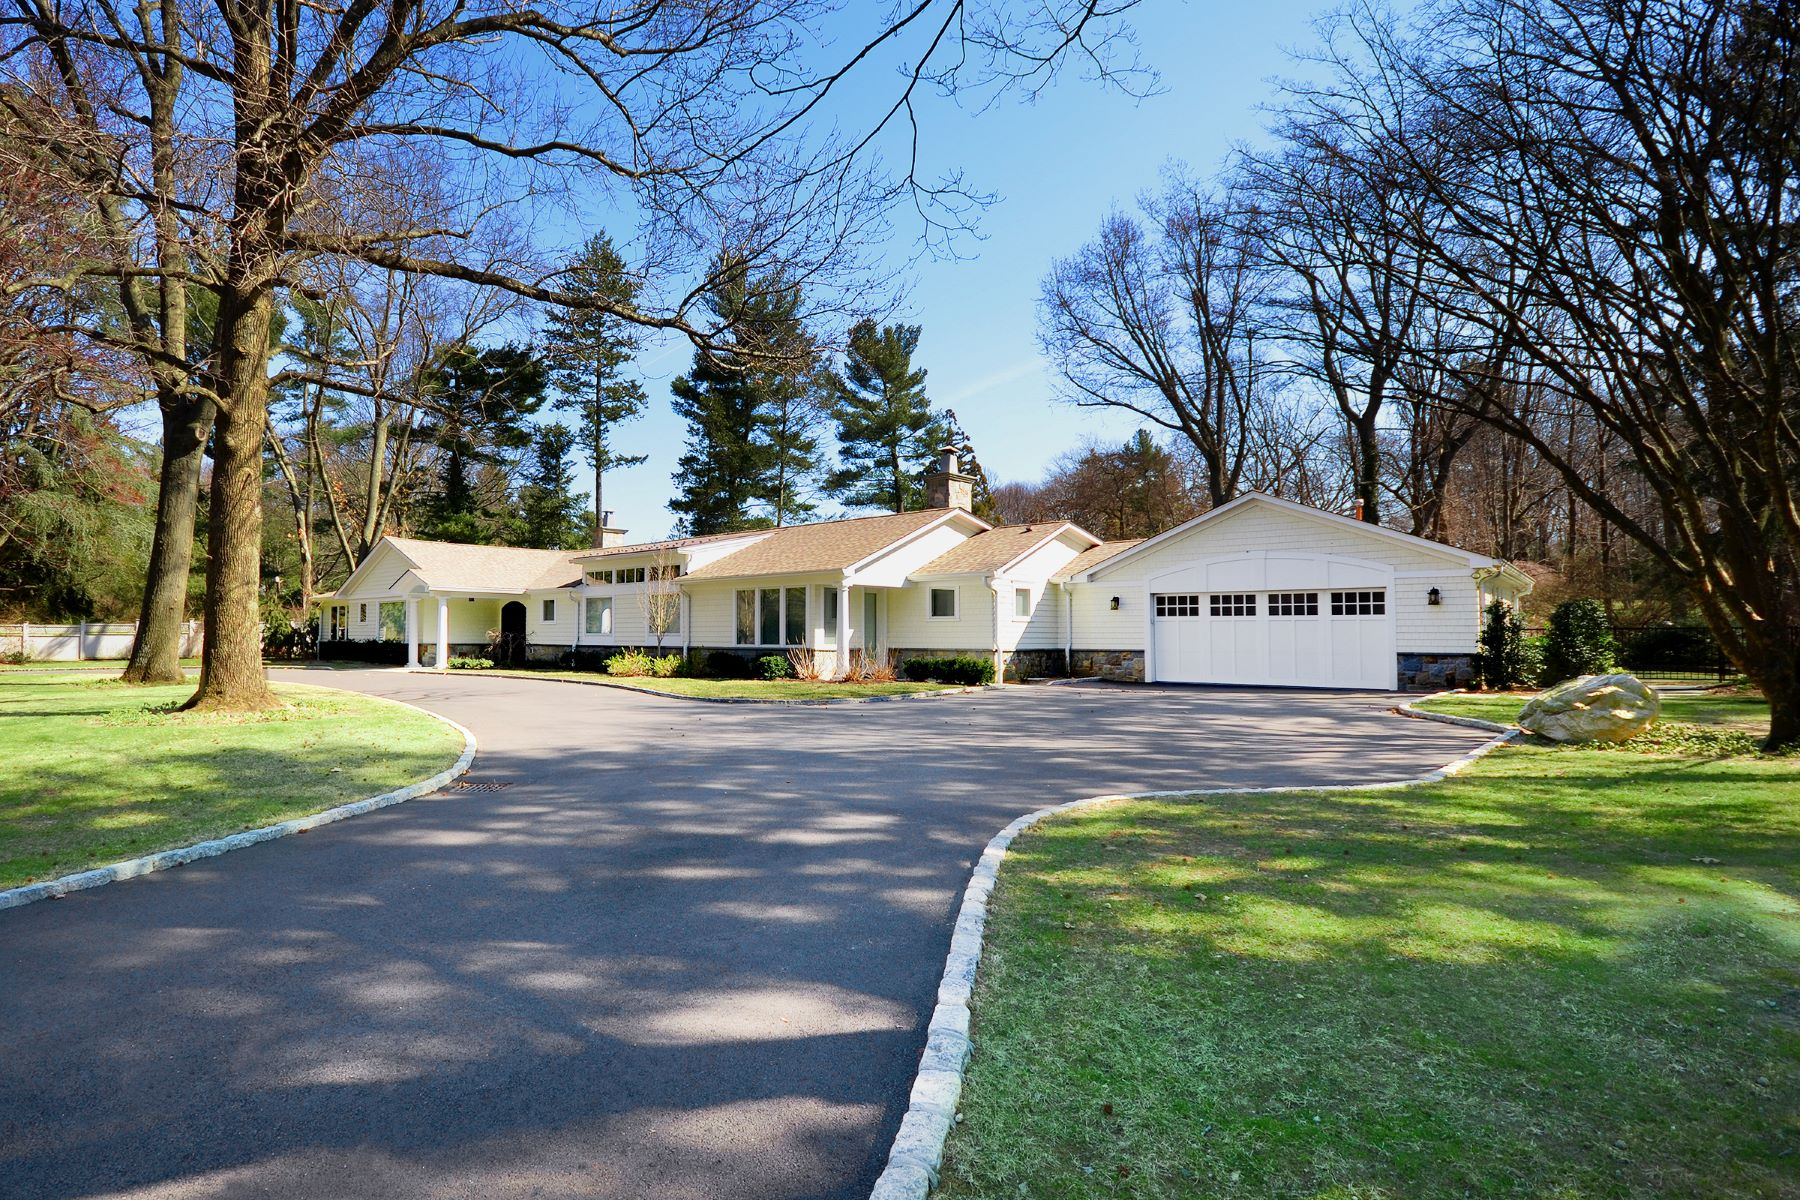 Single Family Homes for Active at Sands Point 10 Woodland Drive Sands Point, New York 11050 United States